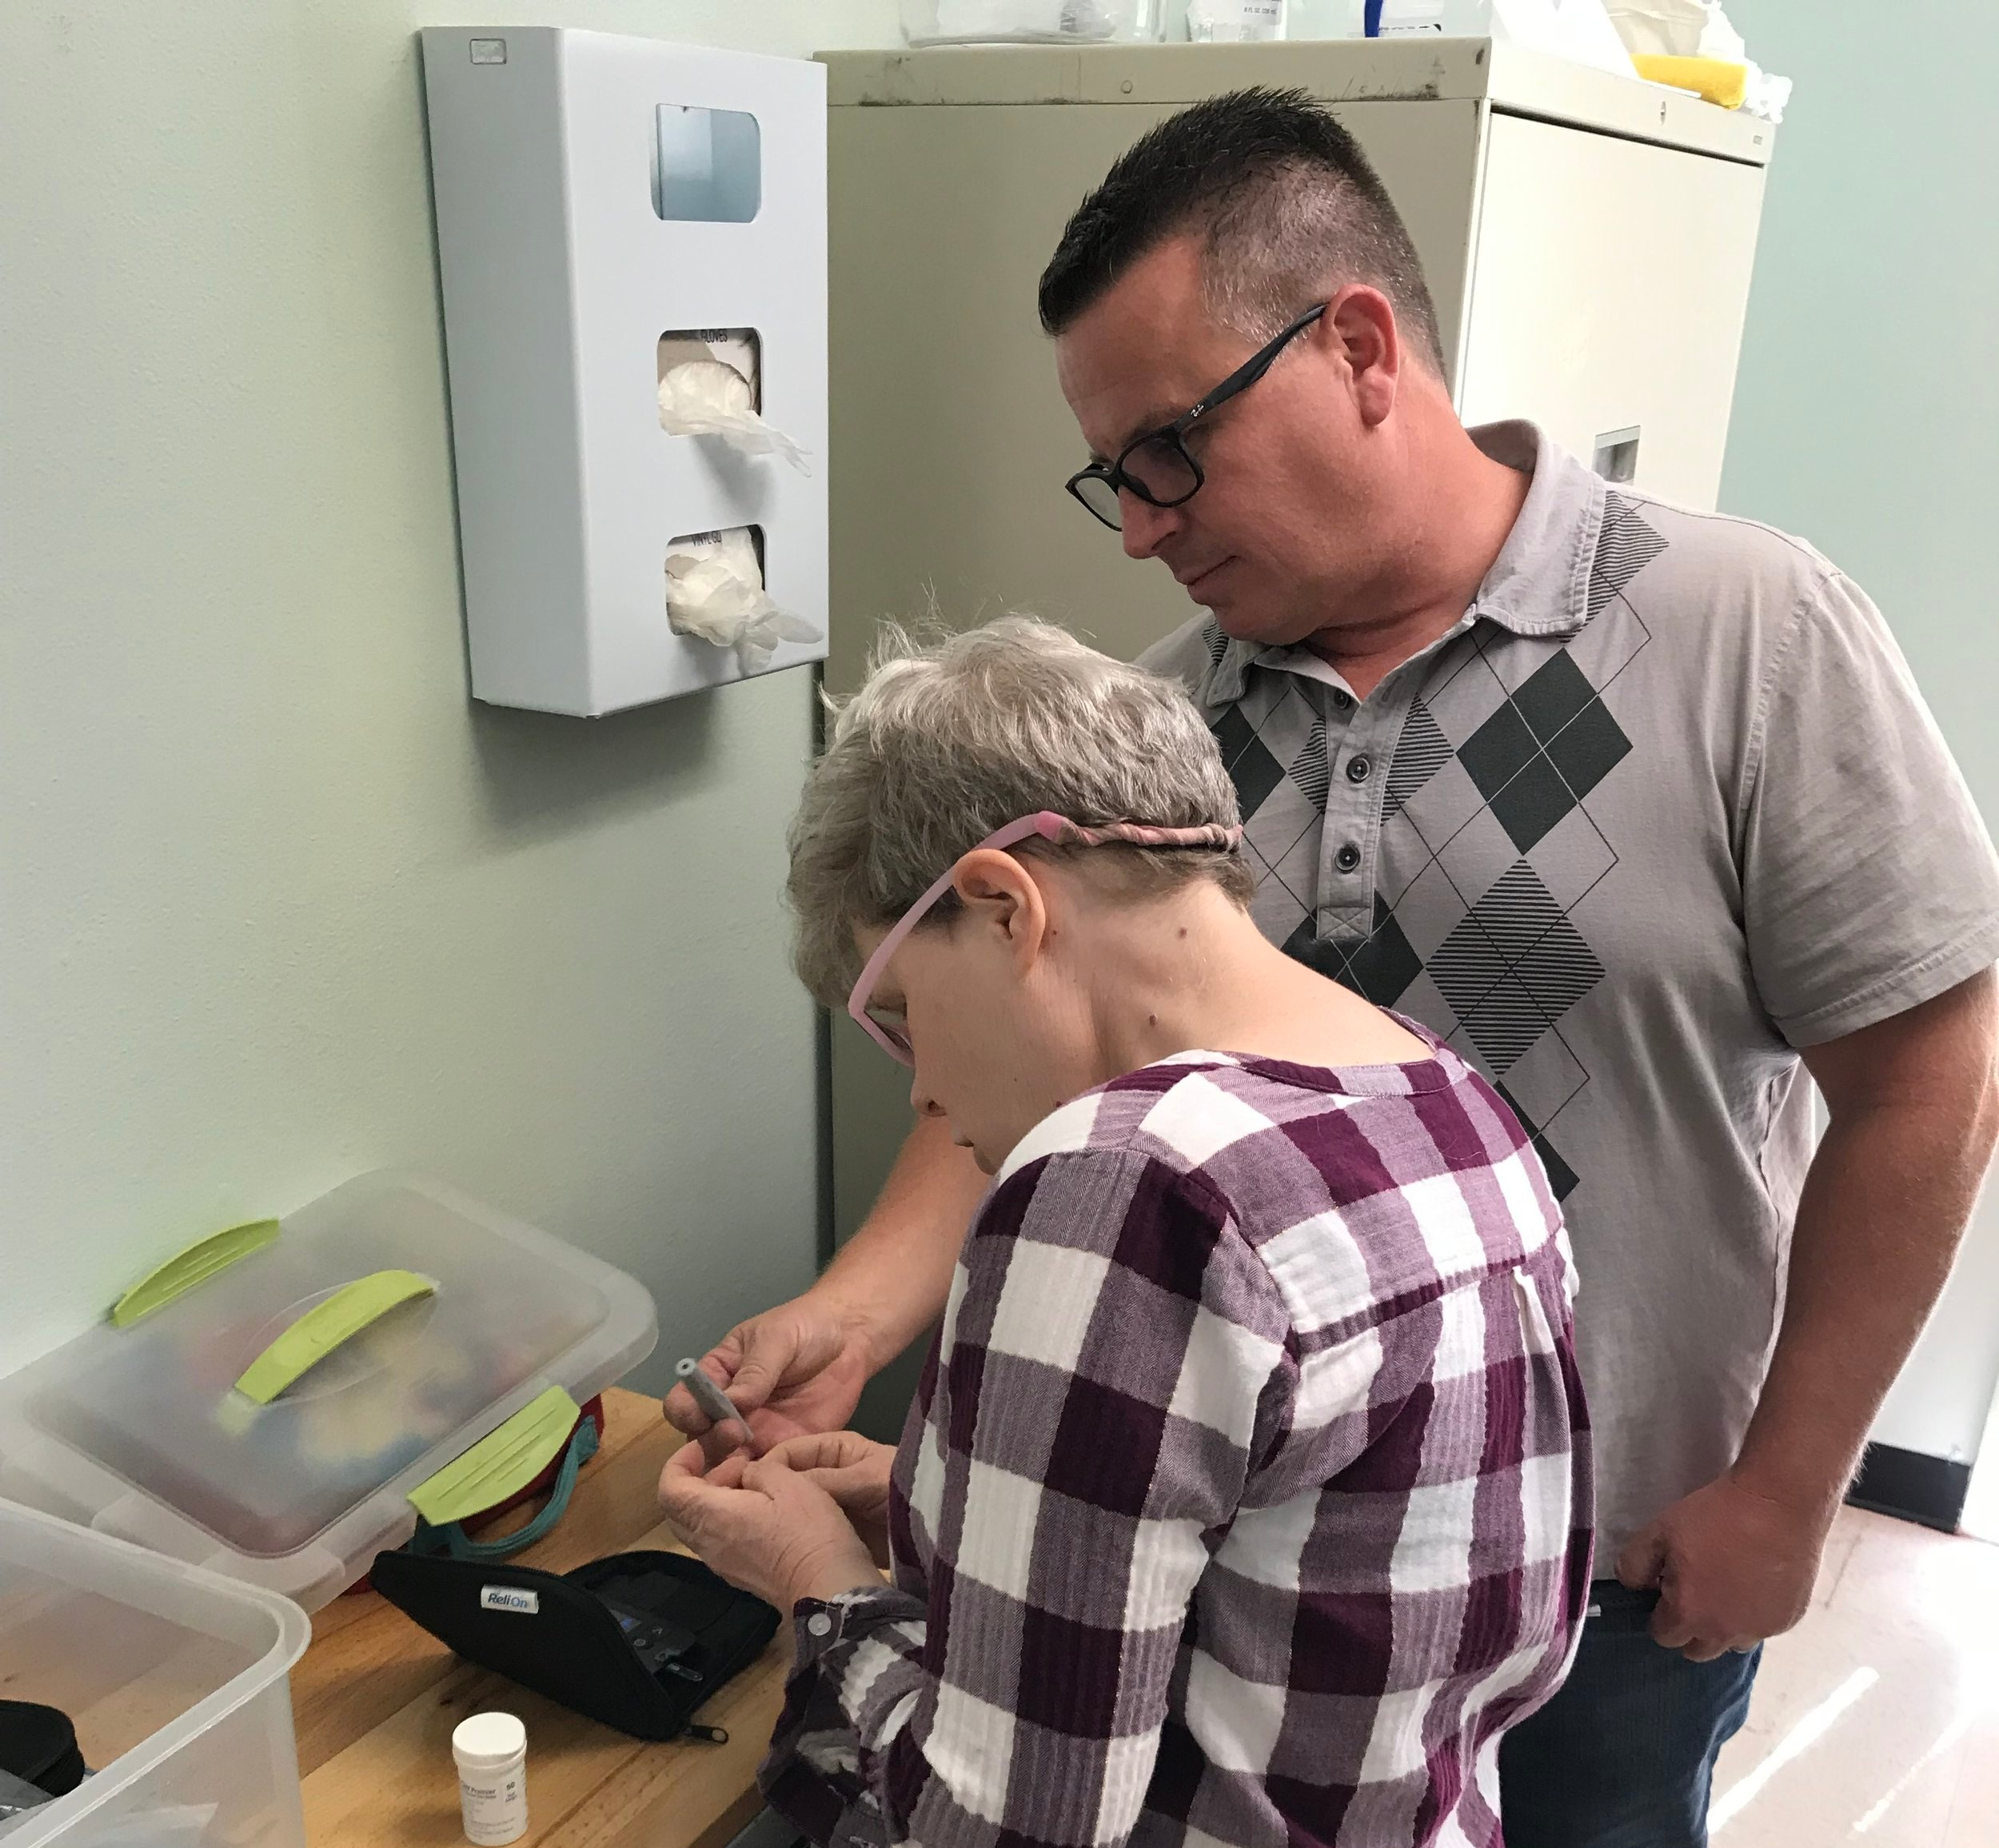 Clester working with a CLIENT to take her blood sugar.